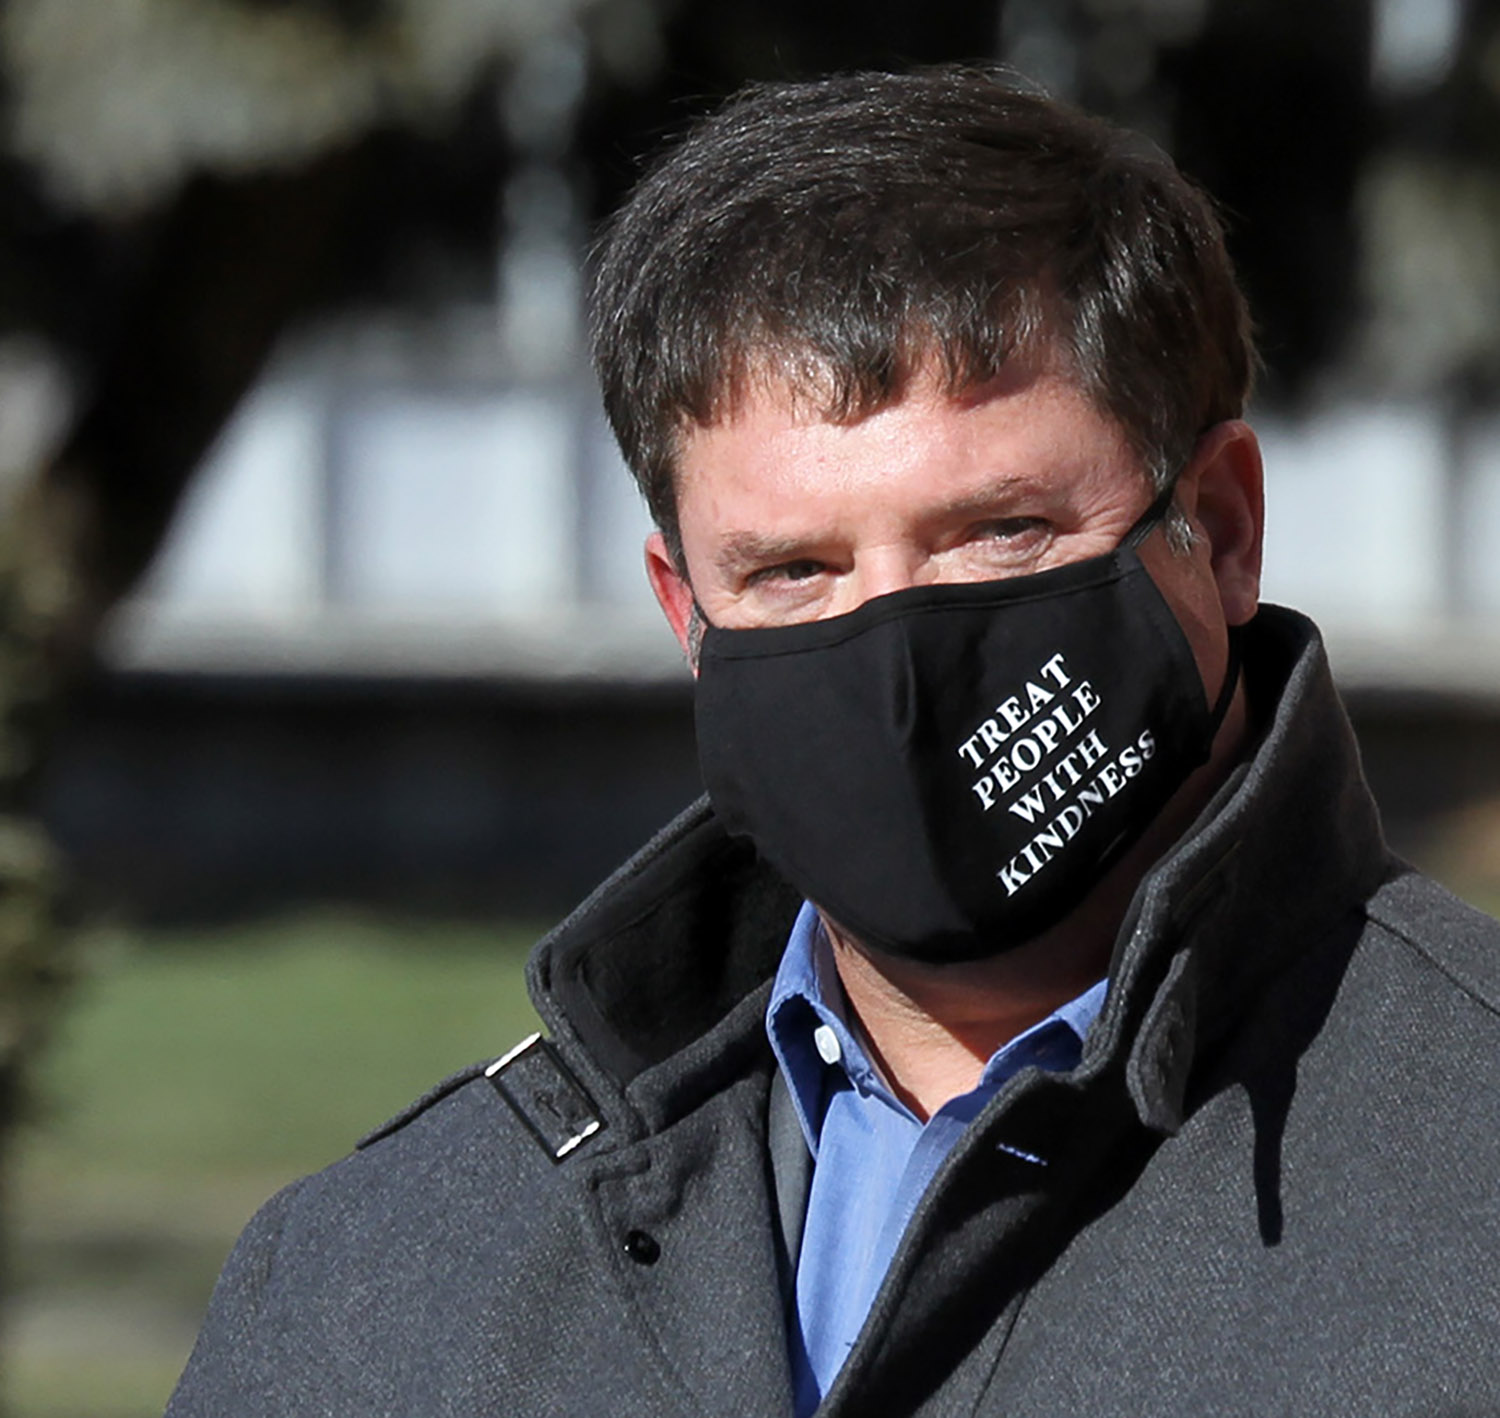 John Falconer's face mask says everything during a Martin Luther King Jr. Day event on the UNK campus. Falconer, senior adviser to the chancellor for executive affairs at UNK, organized Monday's ceremony to honor King's life and legacy and spread his message of peace and equality.